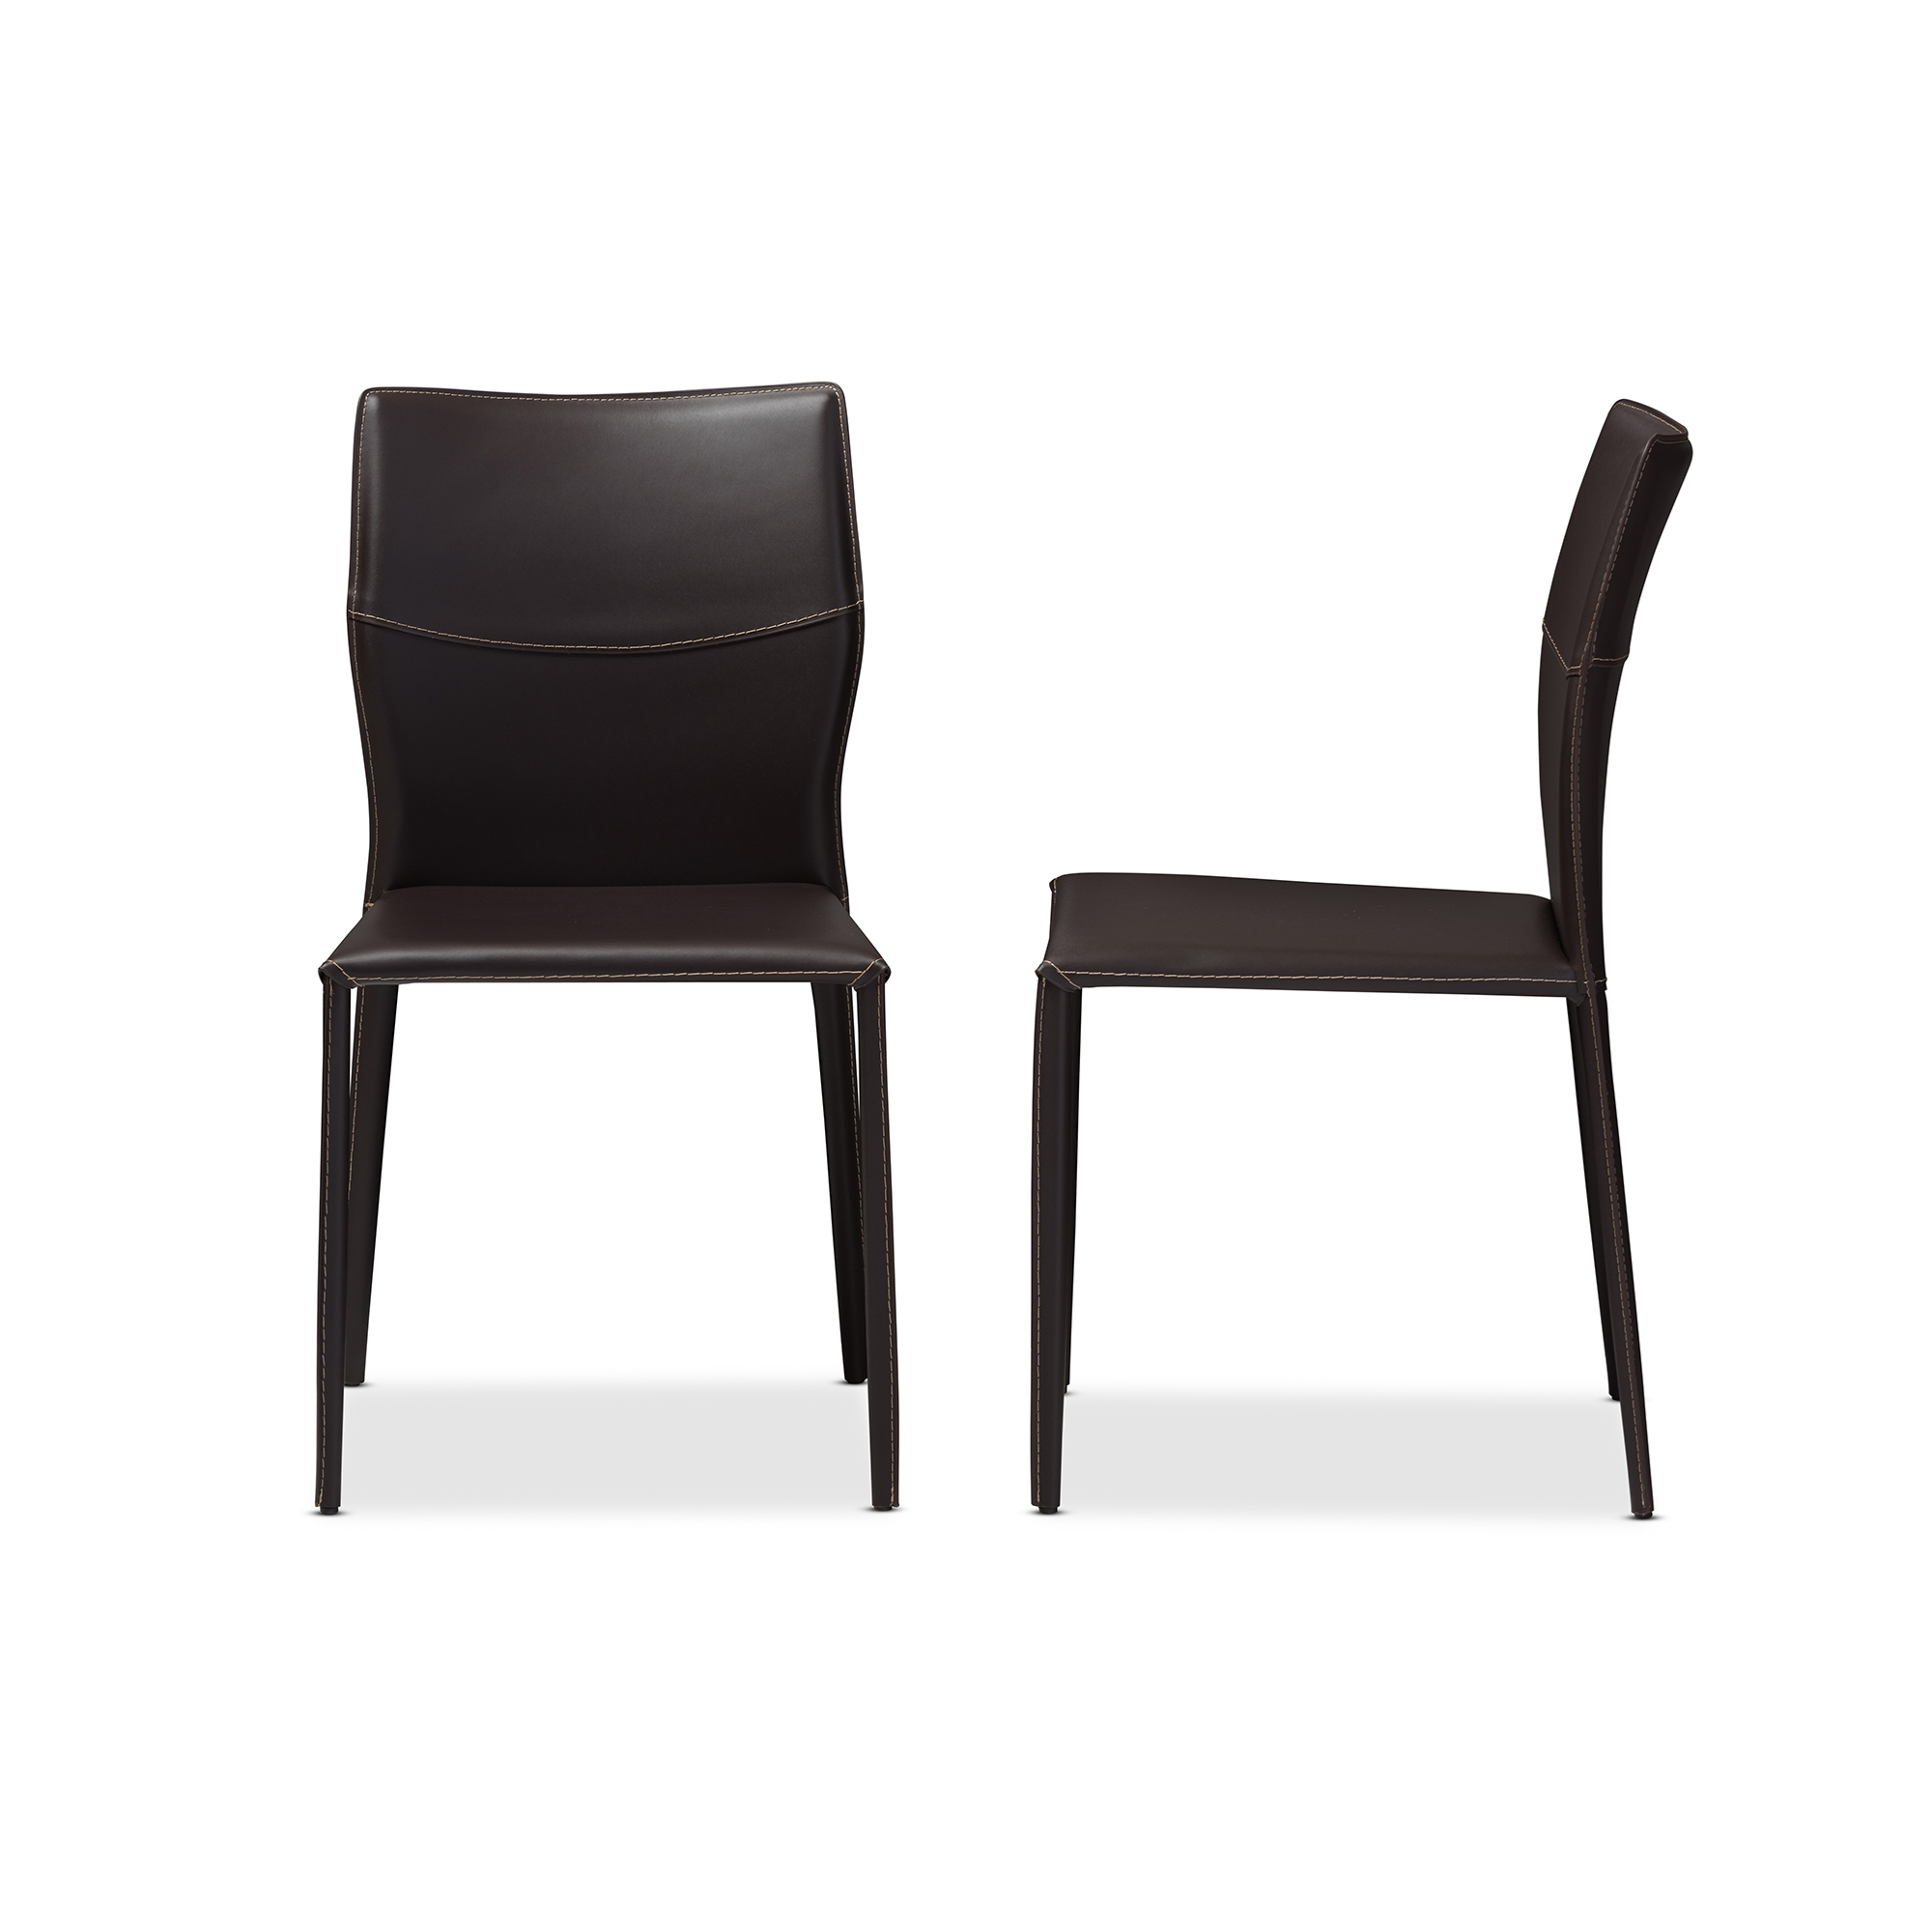 baxton studio asper modern and dark brown bonded leather upholstered dining chair affordable modern furniture - Leather Dining Room Chairs